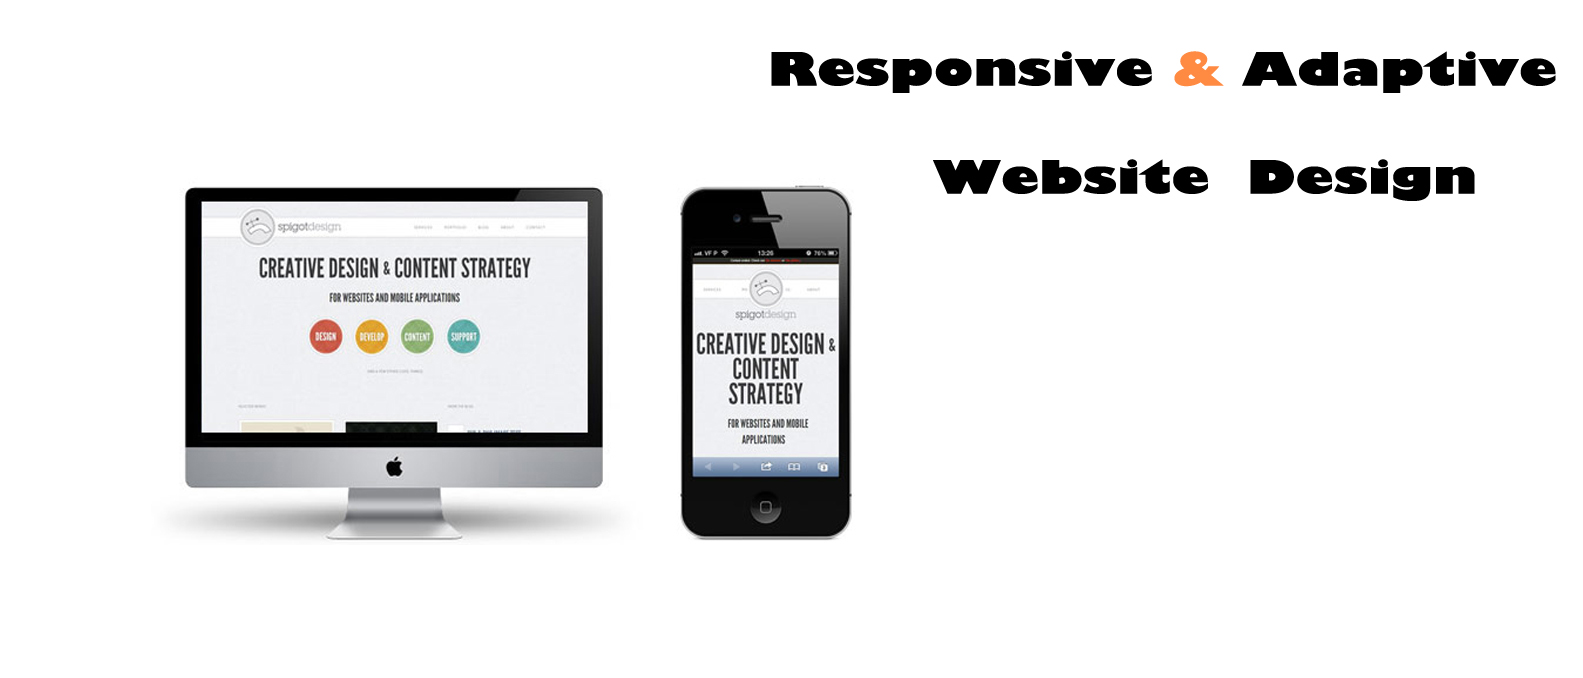 Responsive-Adaptive--Web-Design-infercraft-edit2.jpg